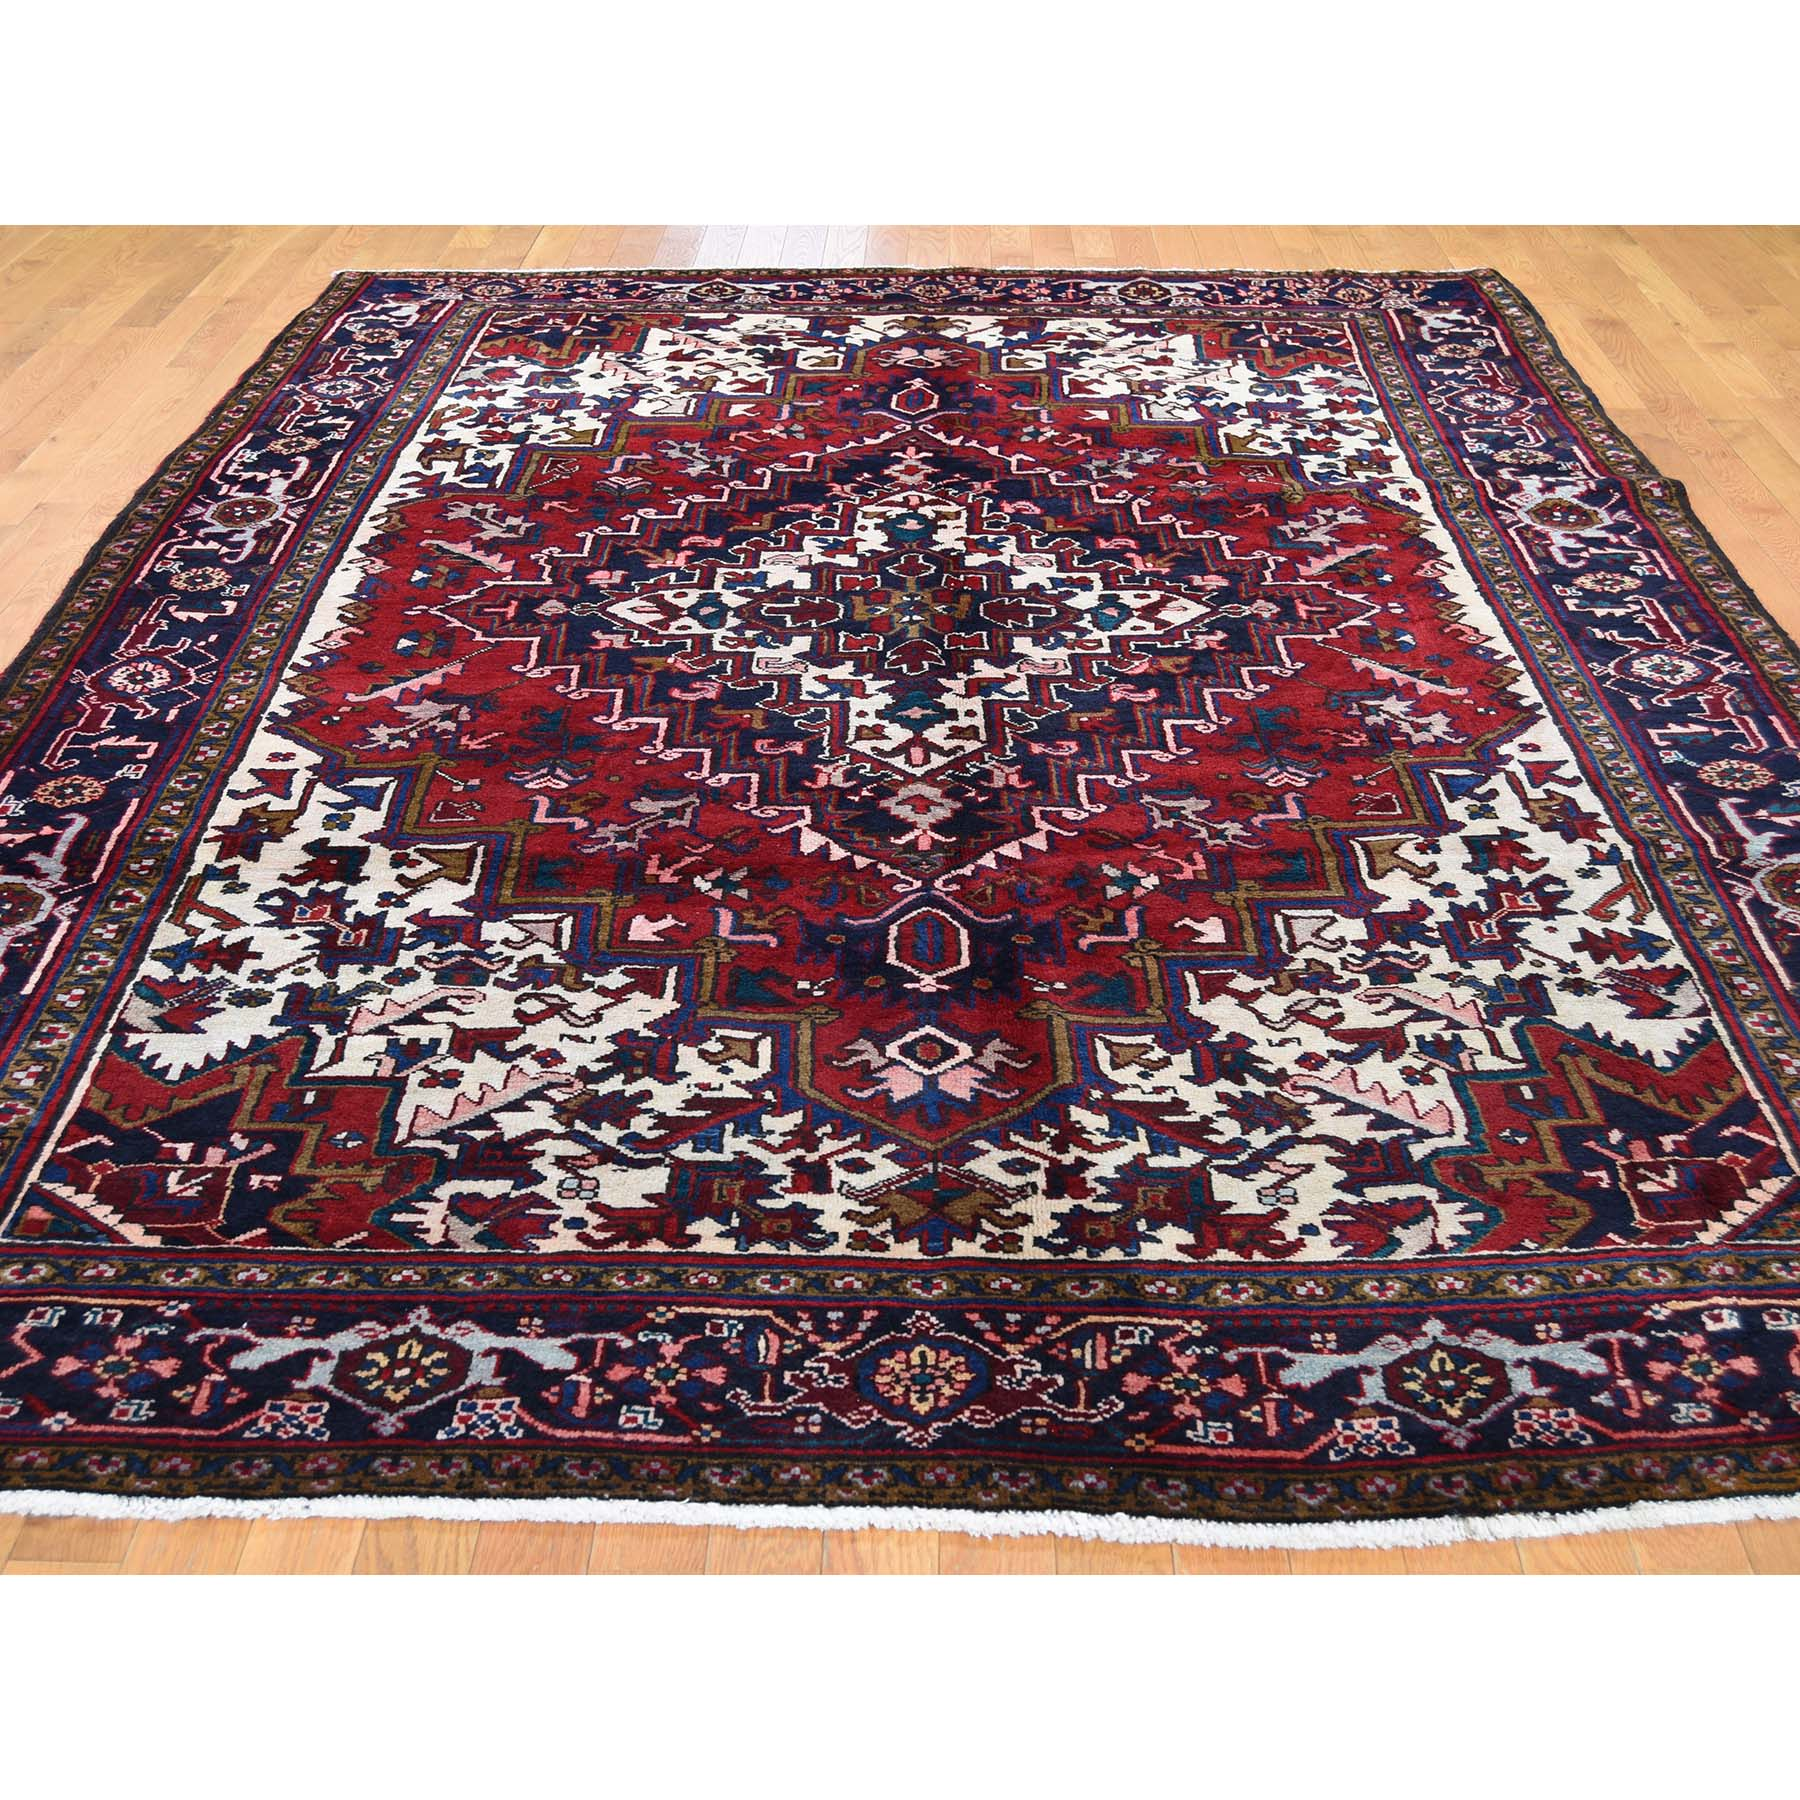 7-6 x11-1  Red & Ivory Semi Antique Heriz Excellent Condition Hand-Knotted Oriental Rug